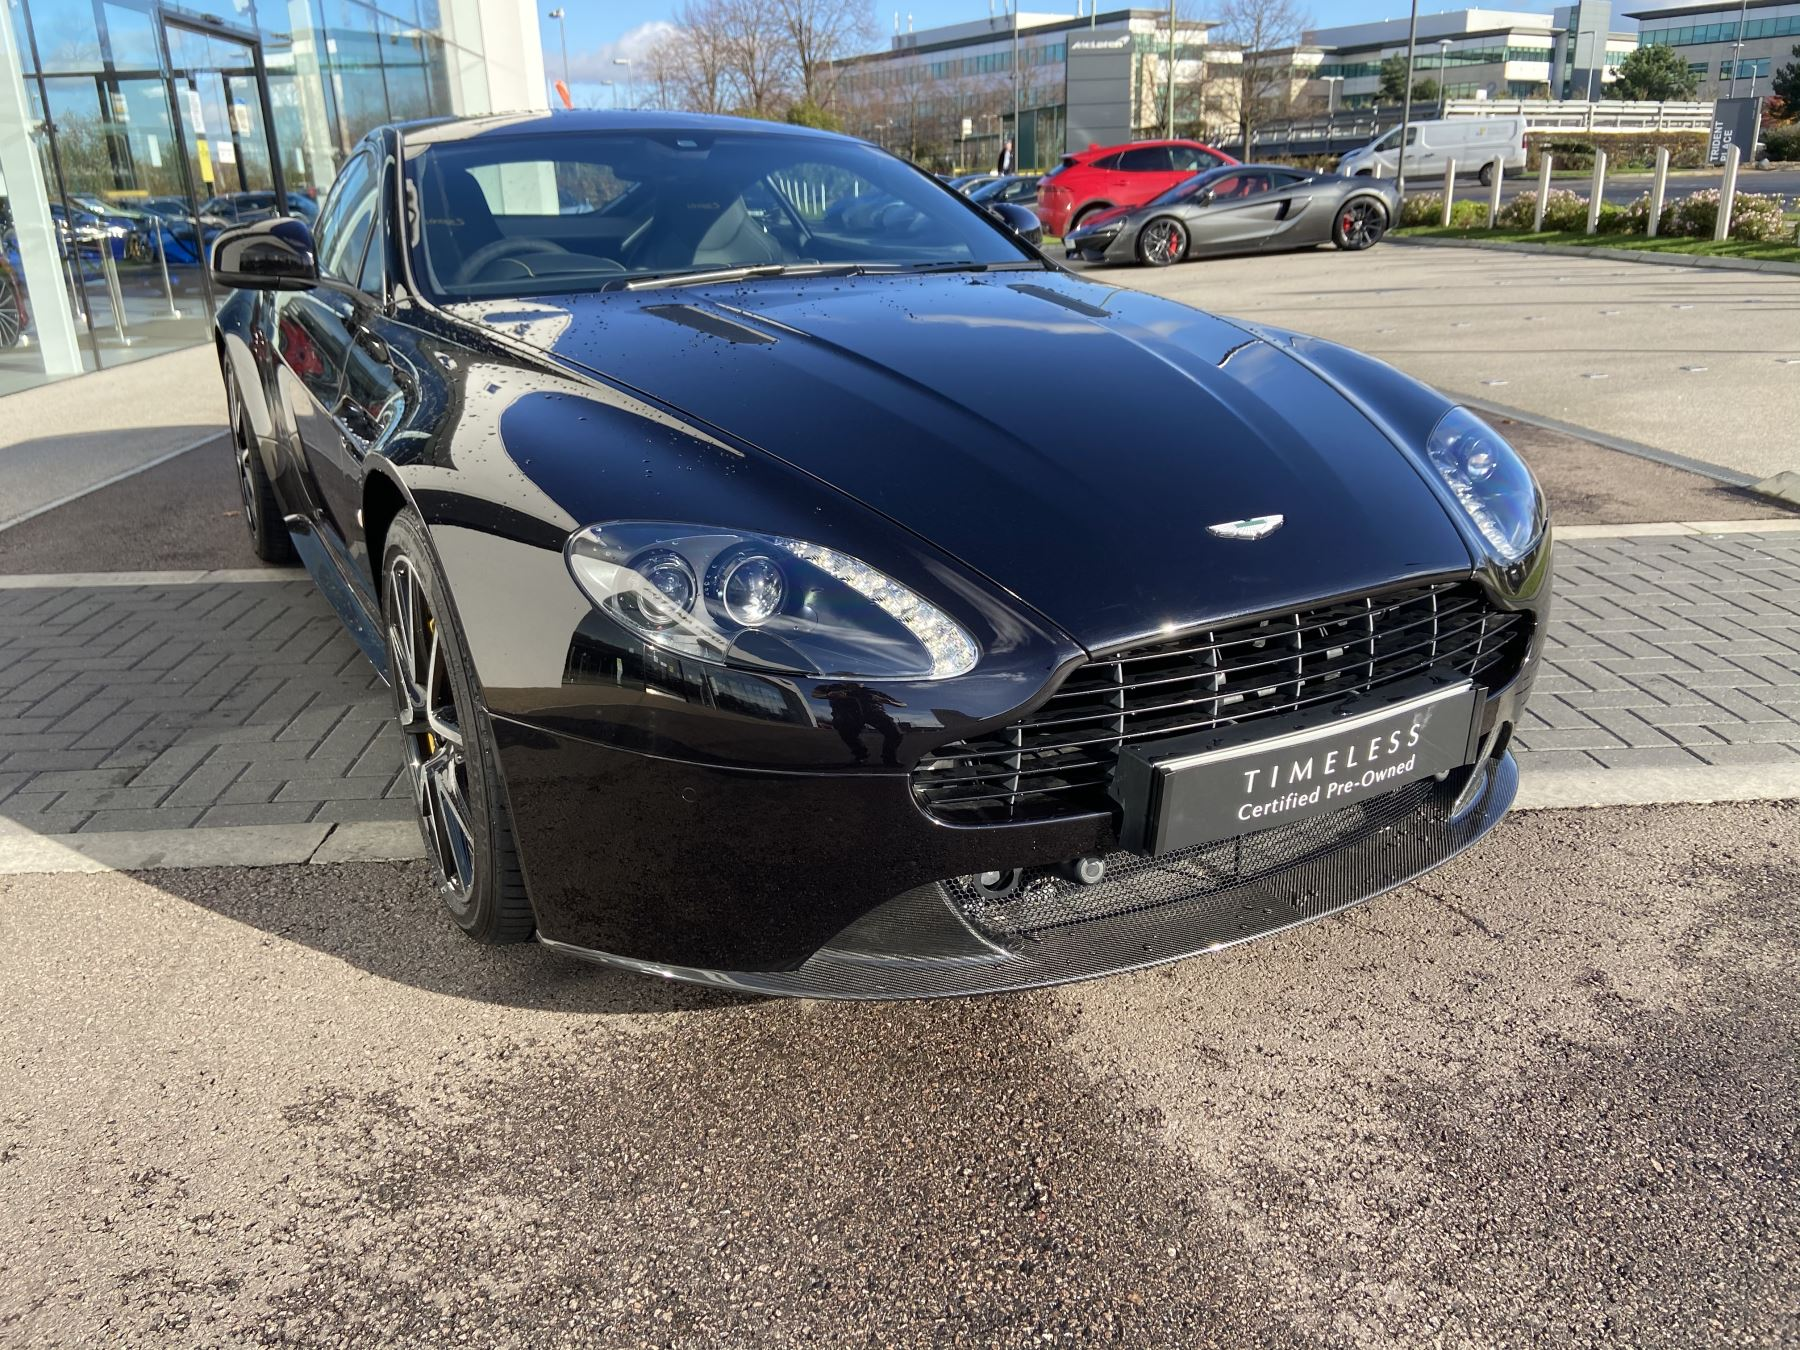 Aston Martin V8 Vantage S Coupe S 2dr Sportshift 4.7 Automatic 3 door Coupe (2015)